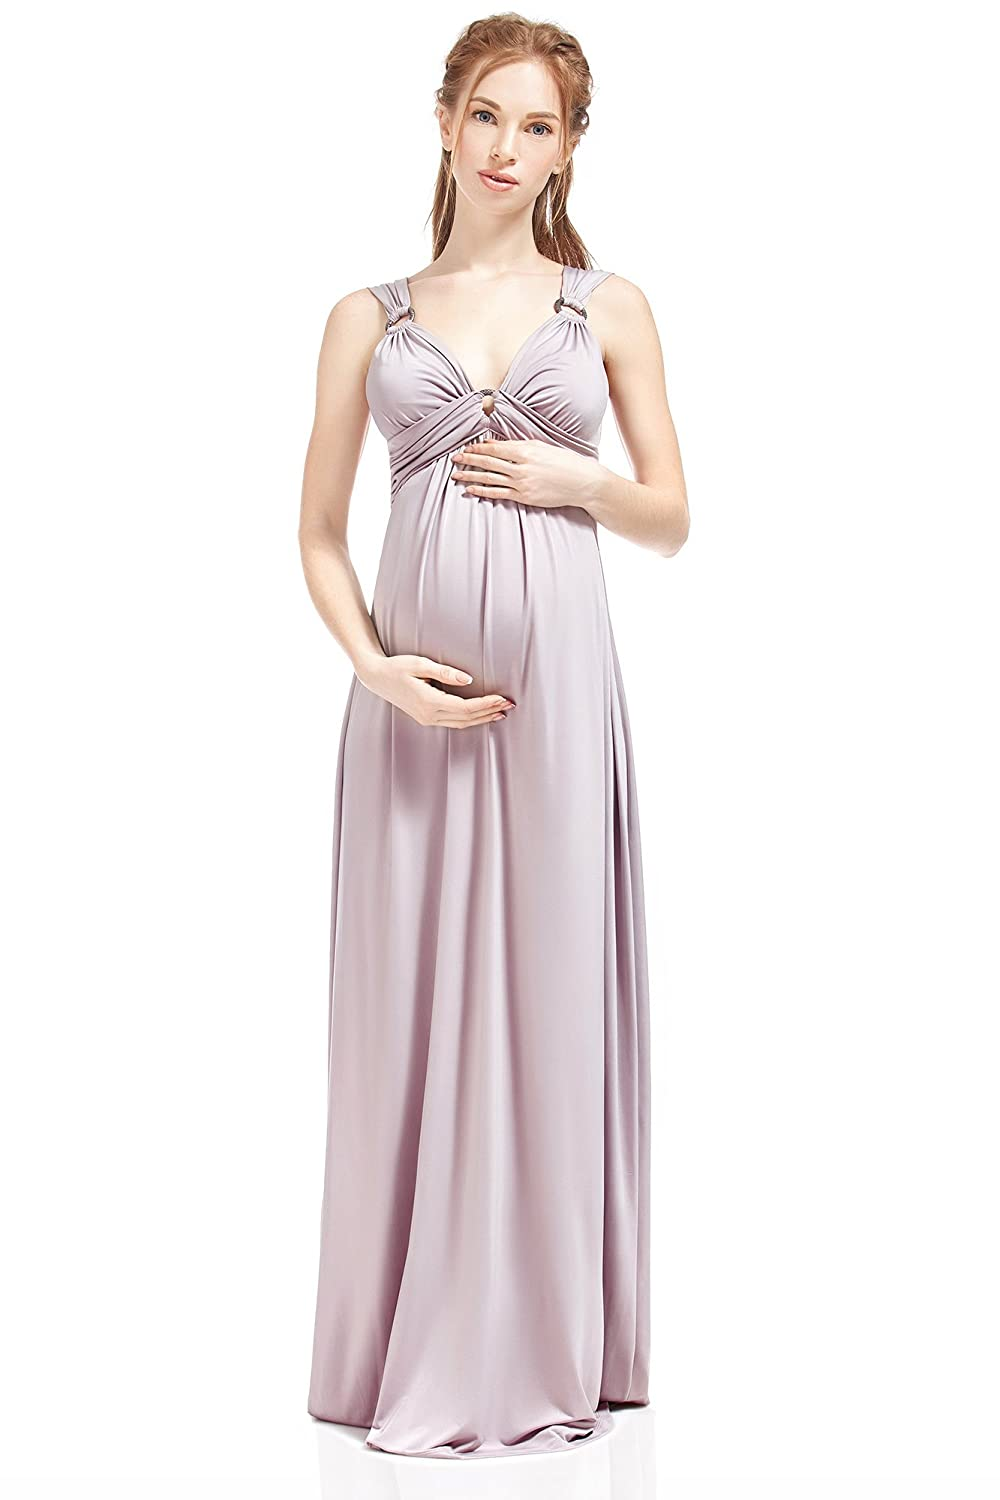 Nothing But Love Maternity And Nursing Dress Giovanna Silky Empire Waist Maxi By NBL